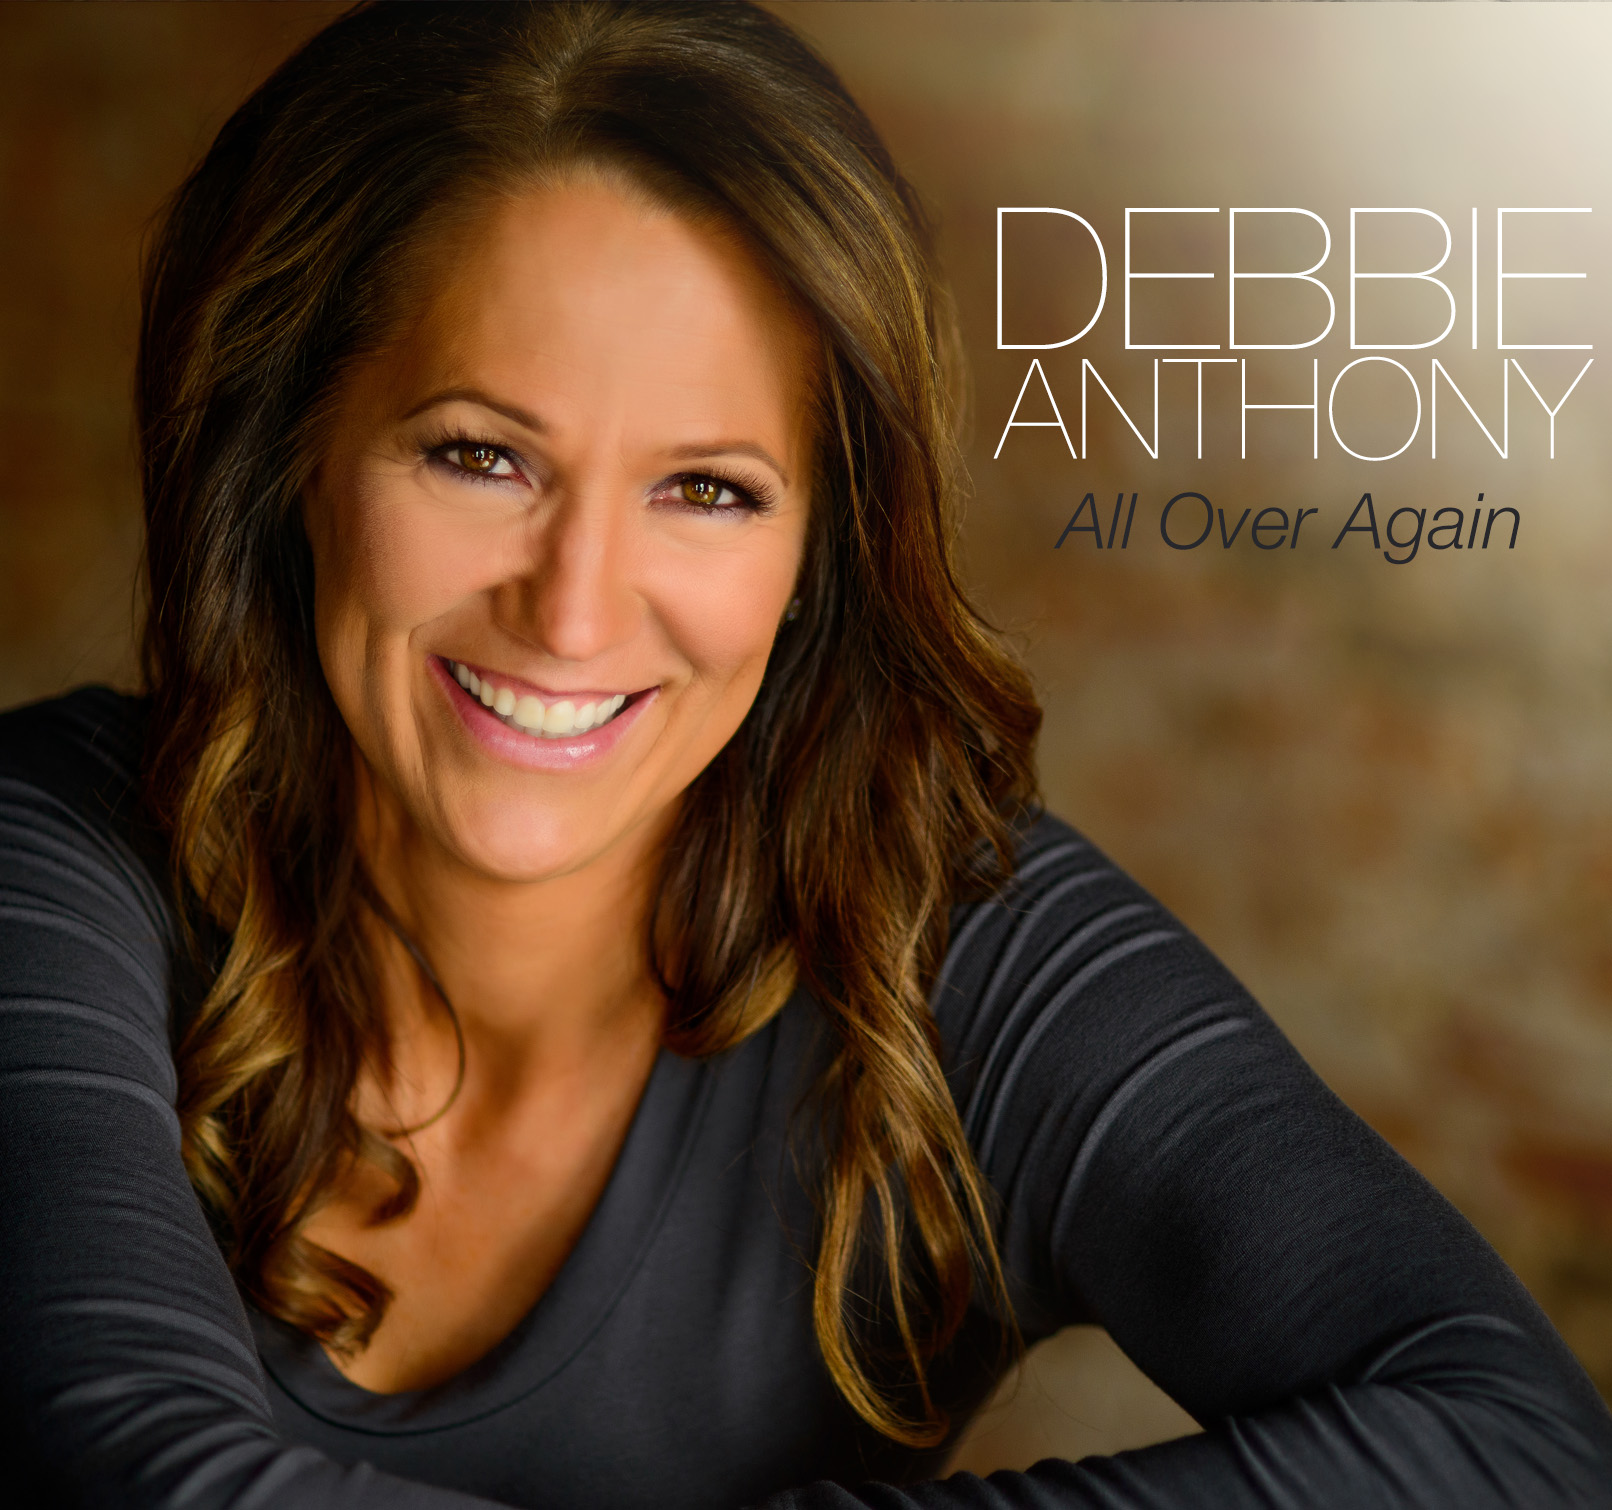 Debbie Anthony - All Over Again